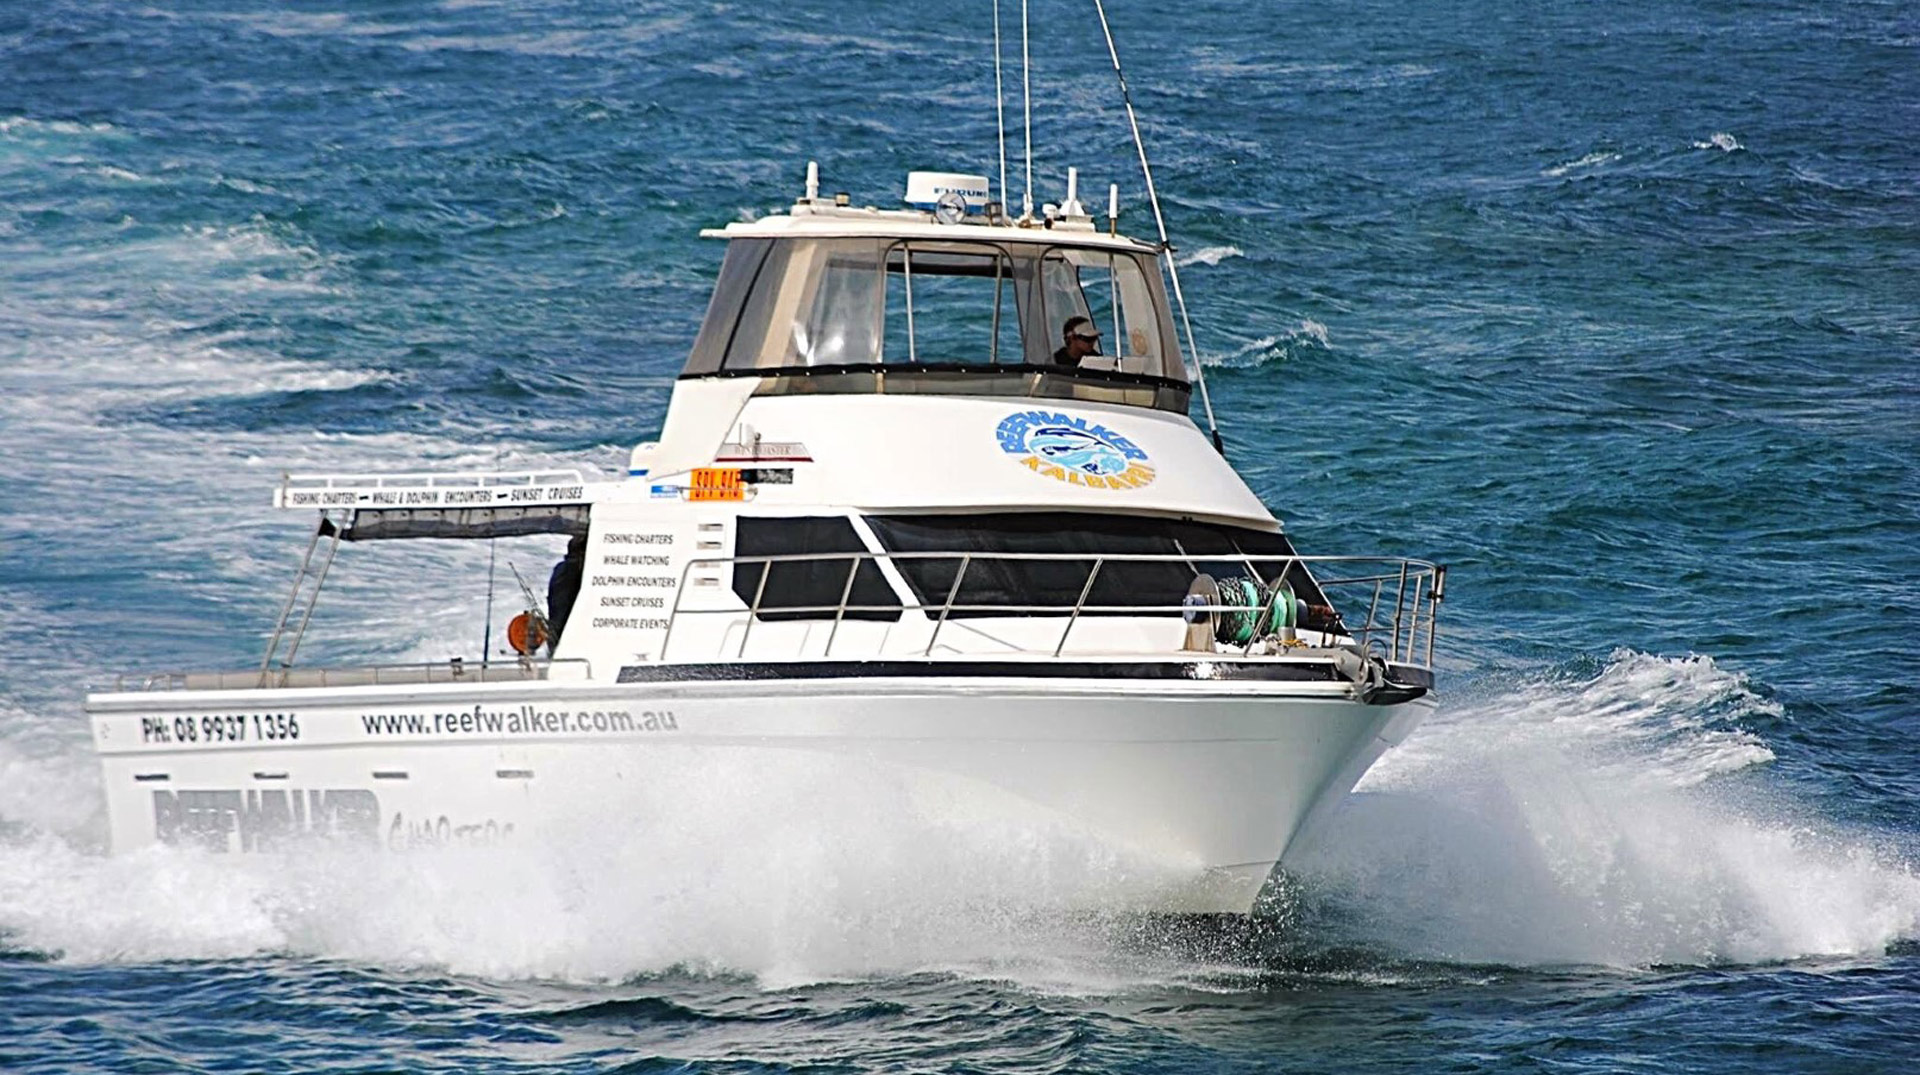 Reefwalker Tours and Charters in Kalbarri